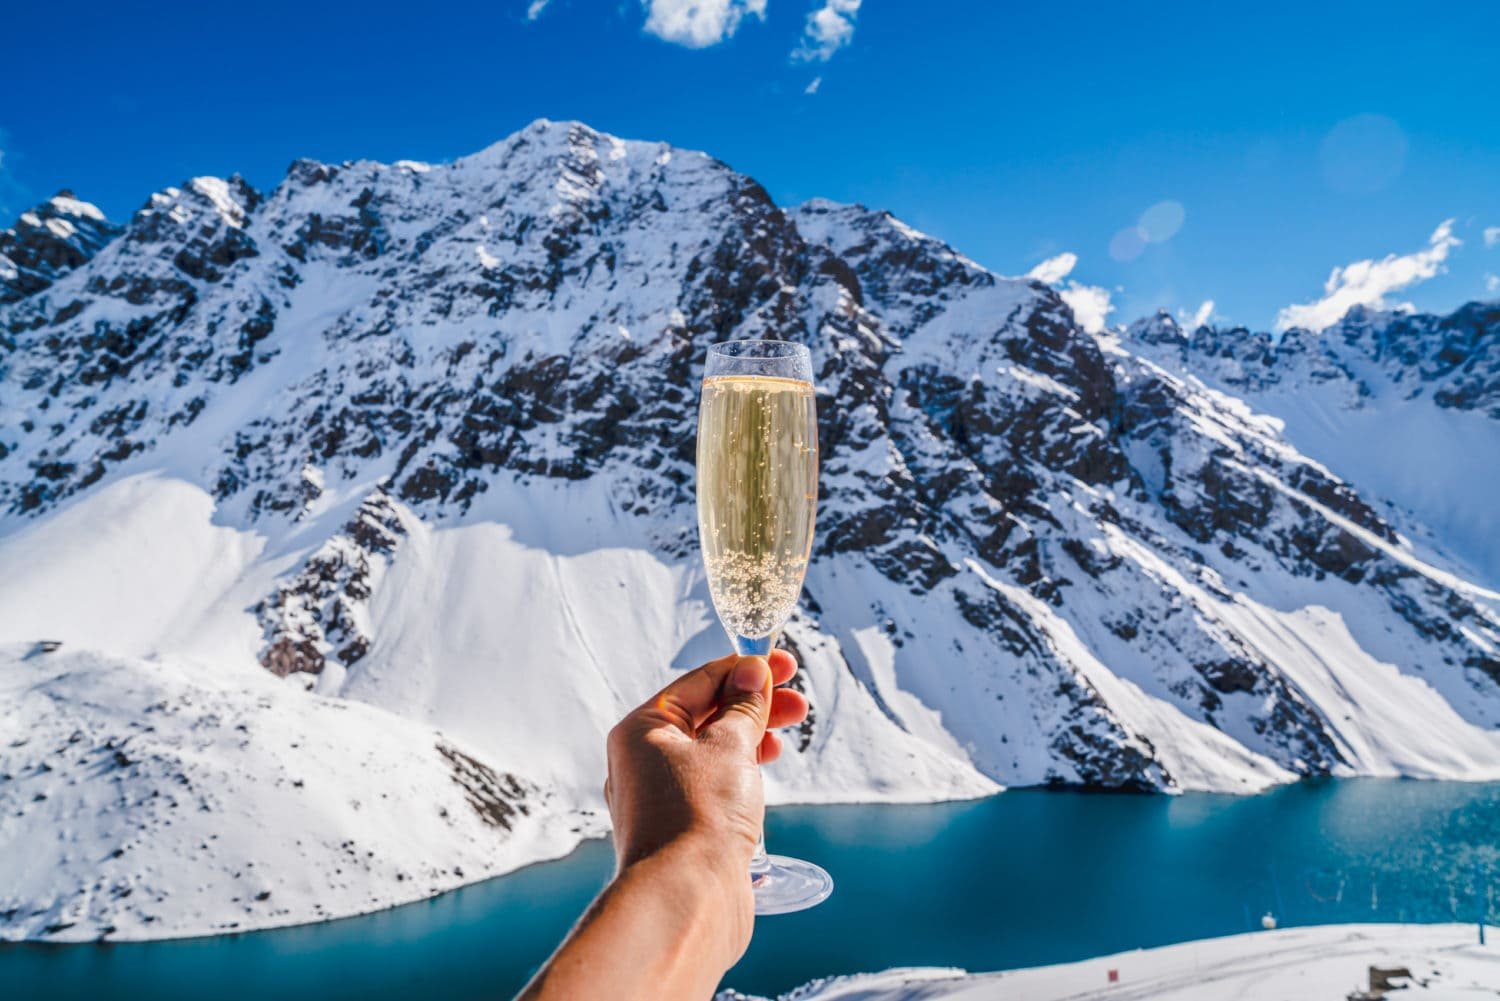 Champagne and snow - Snow Champagne Background Mountain. Snow Ski Luxury Resort & Blue Crystal Background. Winter Plateau, Austria. Snowboarding in Winter Holidays. Adventure. Snow Mountain Alps from Peak. Winter Ski.